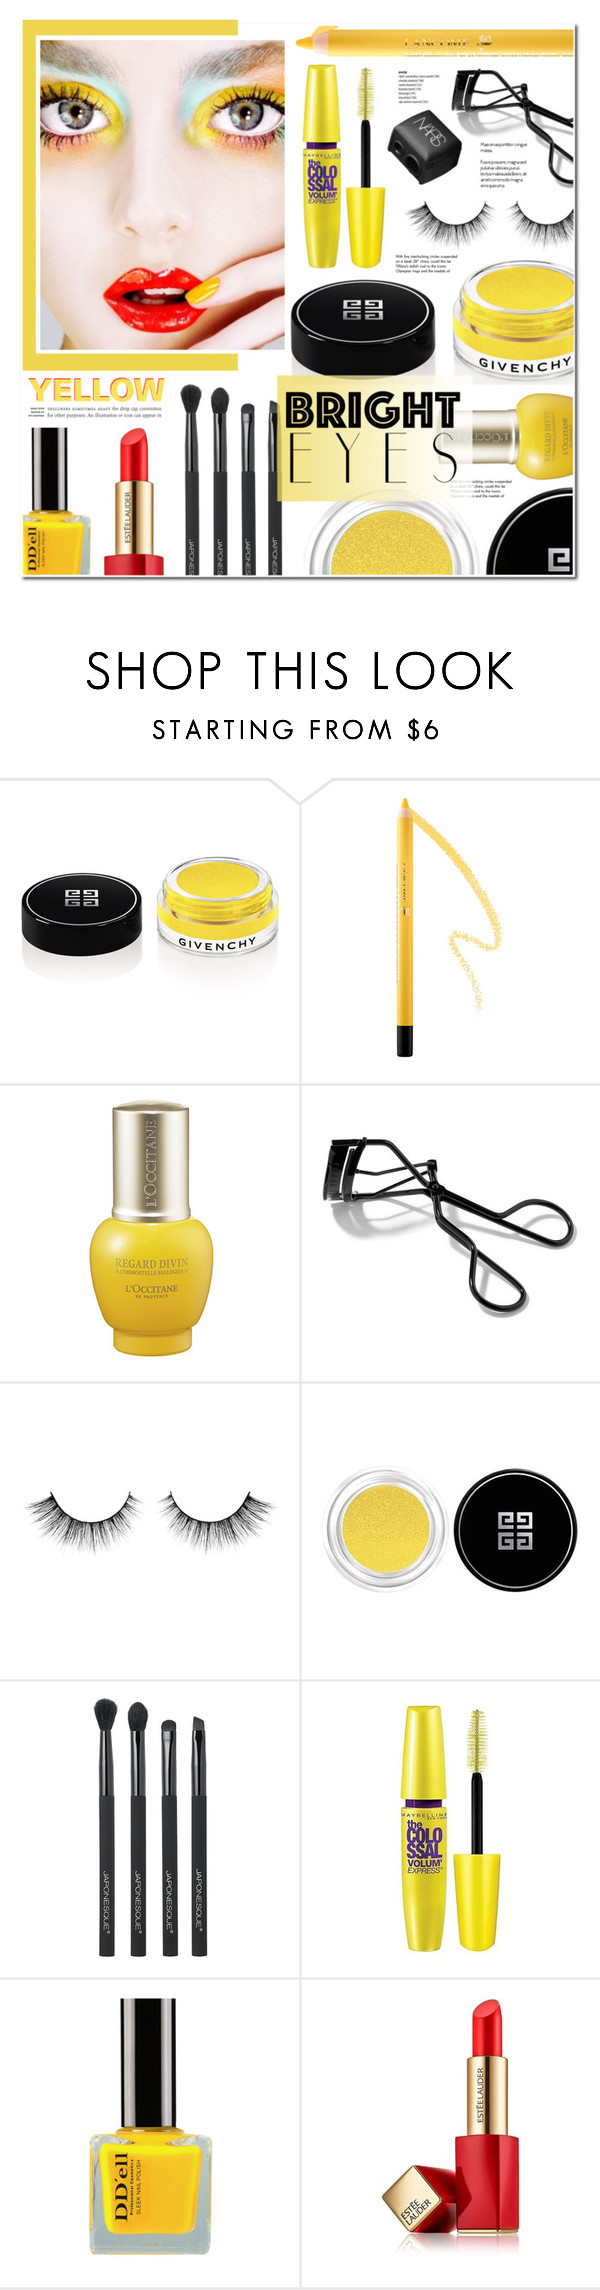 """""""Turn Around, Bright Eyes (Yellow)"""" by anyasdesigns ❤ liked on Polyvore featuring beauty, Givenchy, L'Occitane, Bobbi Brown Cosmetics, Japonesque, Maybelline, Estée Lauder, NARS Cosmetics, Tiffany & Co. and Beauty"""